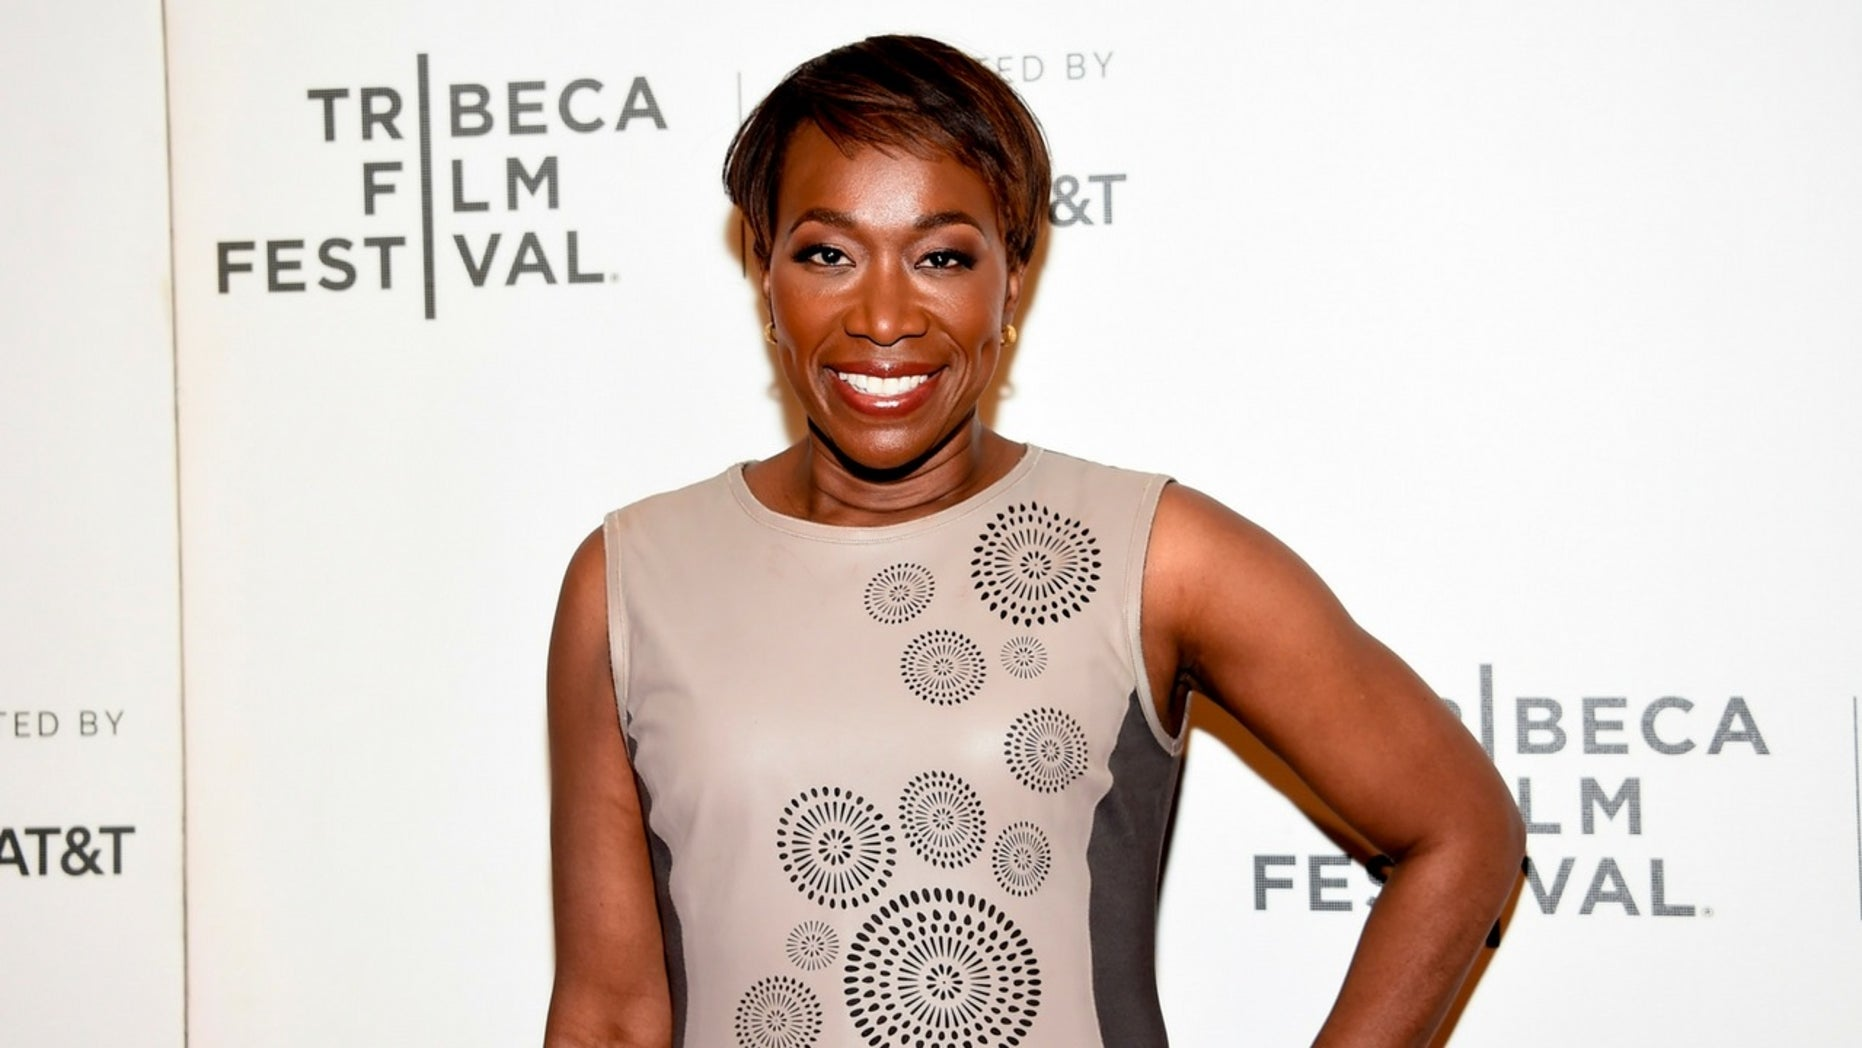 Joy Reid apologized for hurtful comments she made in the past.